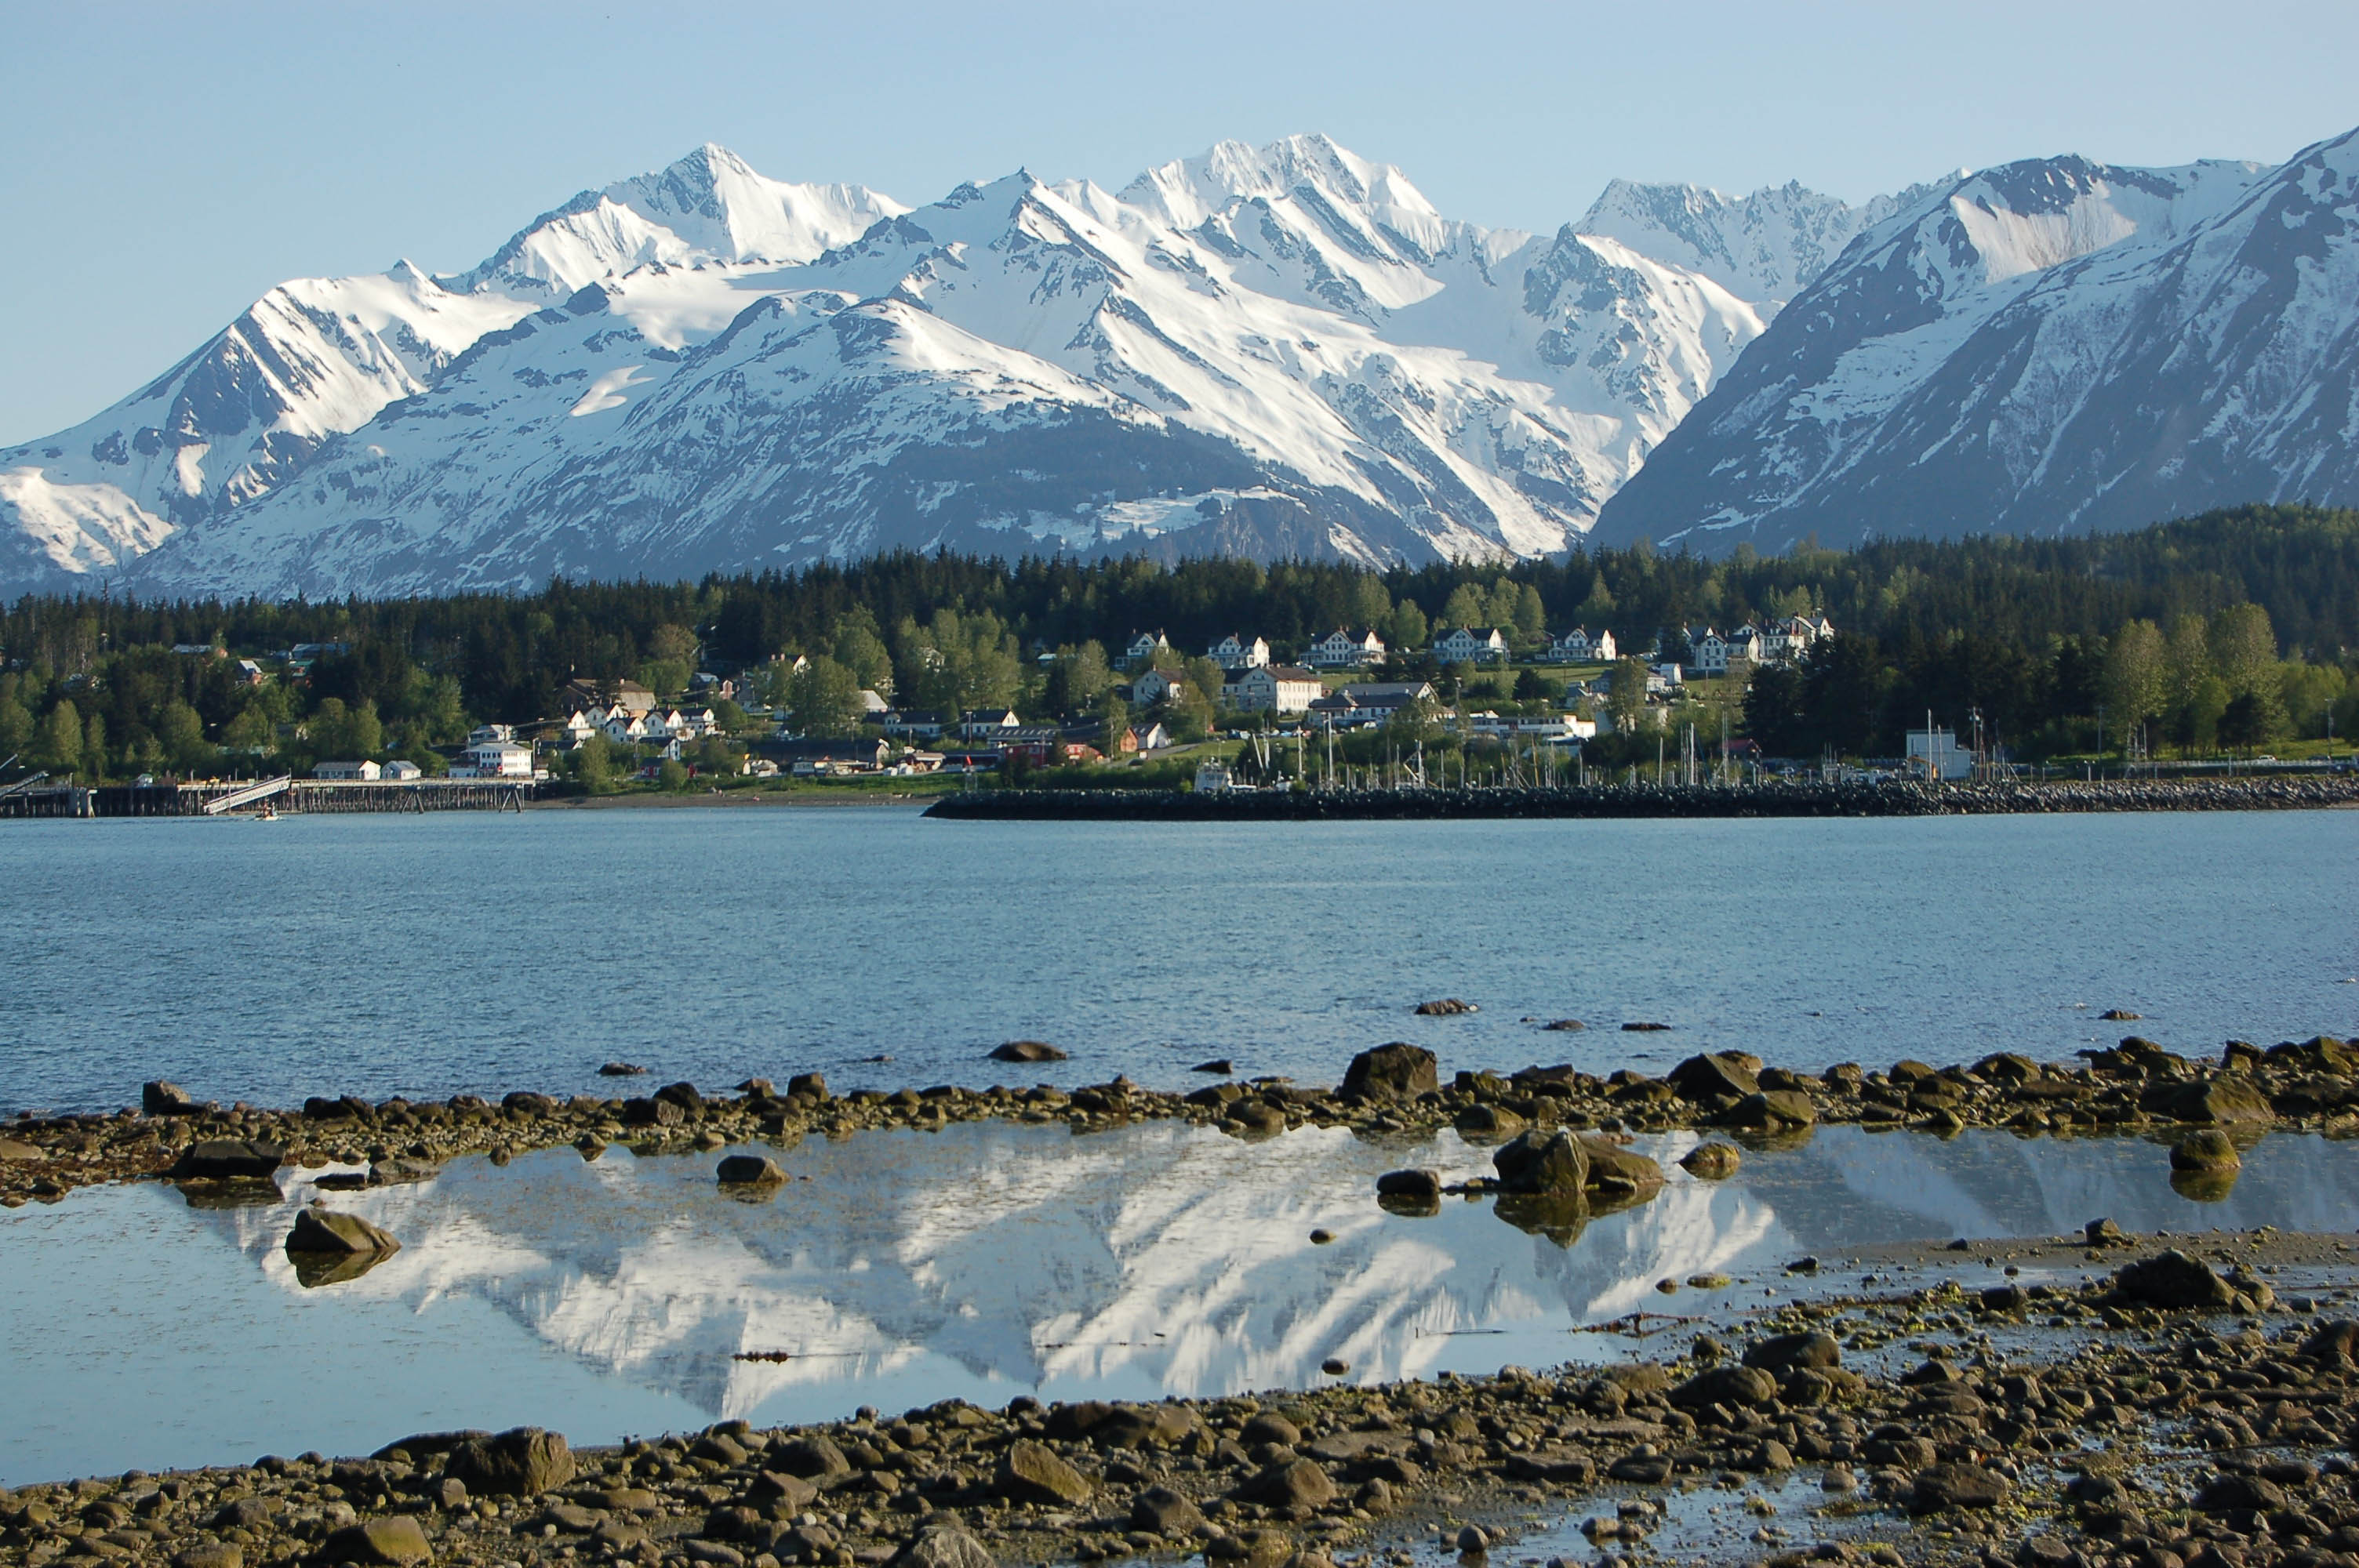 Ft. Seward with the Chilkat Mountains in the background